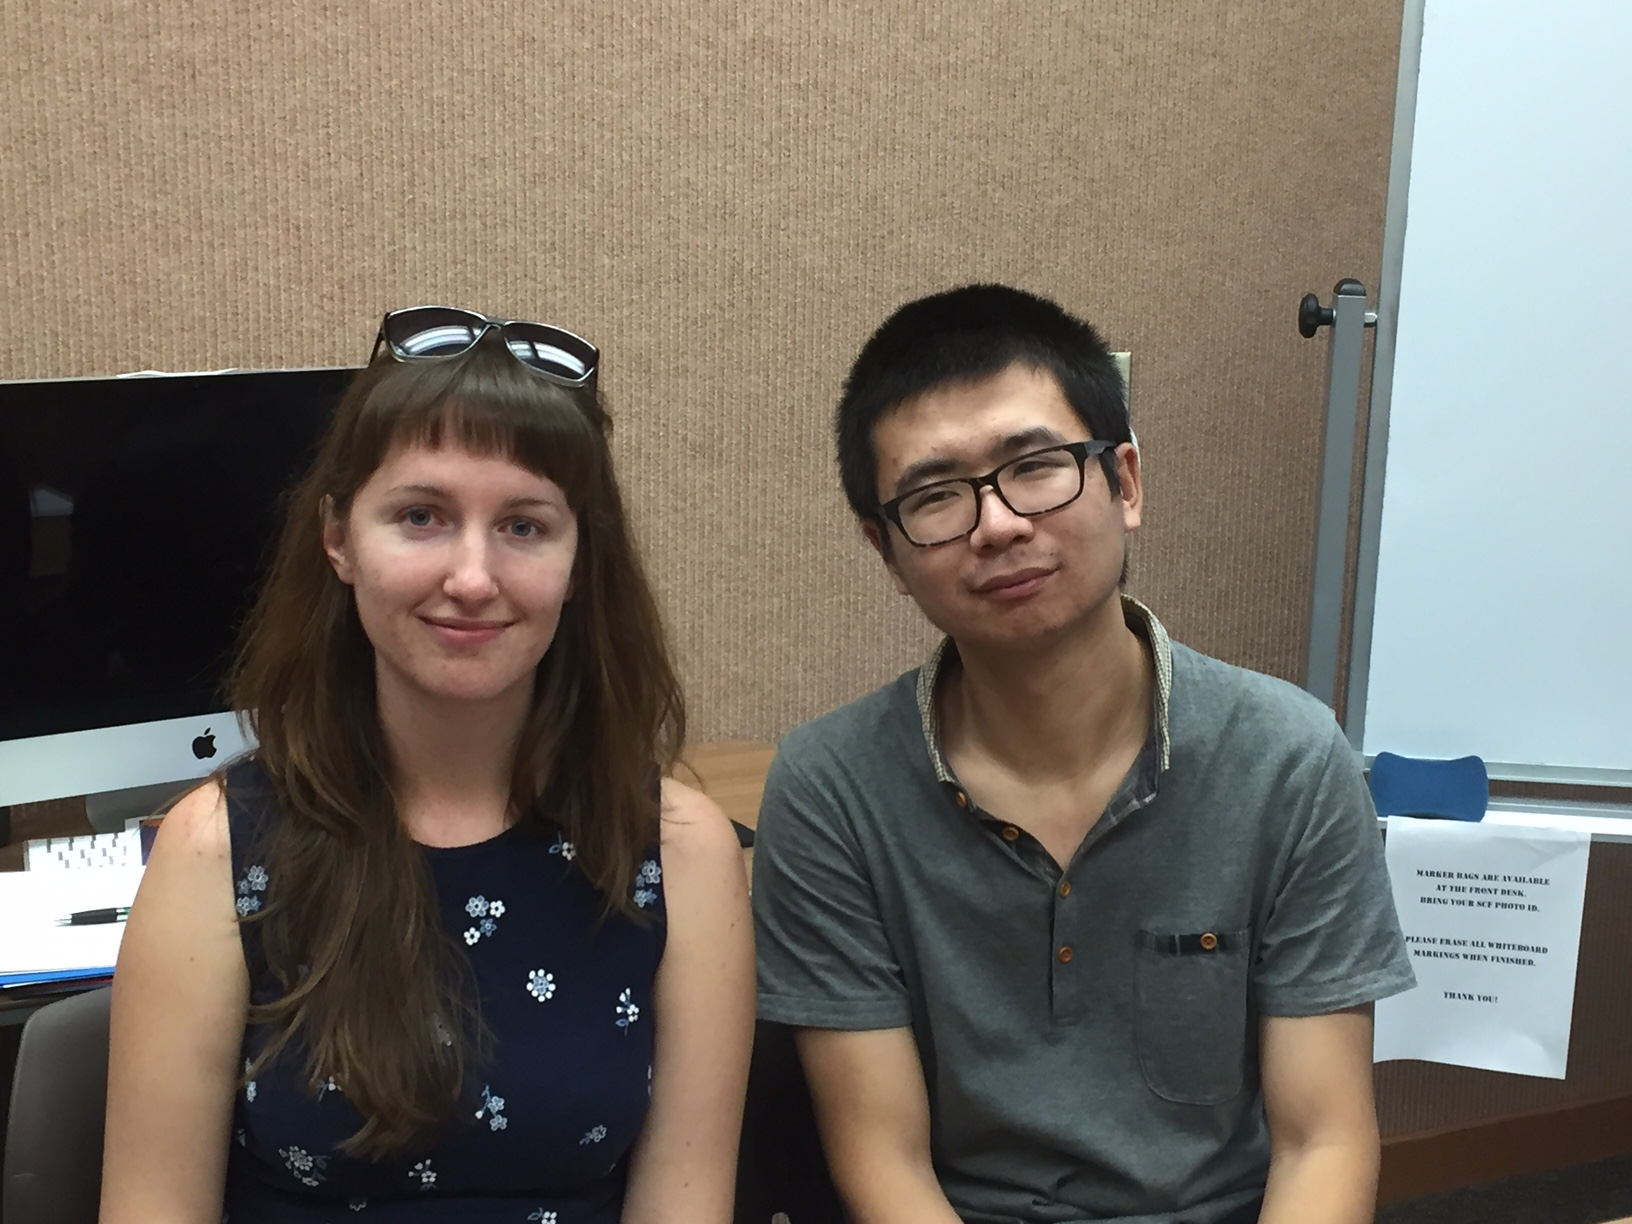 Immigration interview with Oleksandra and Wentao 3/16/16